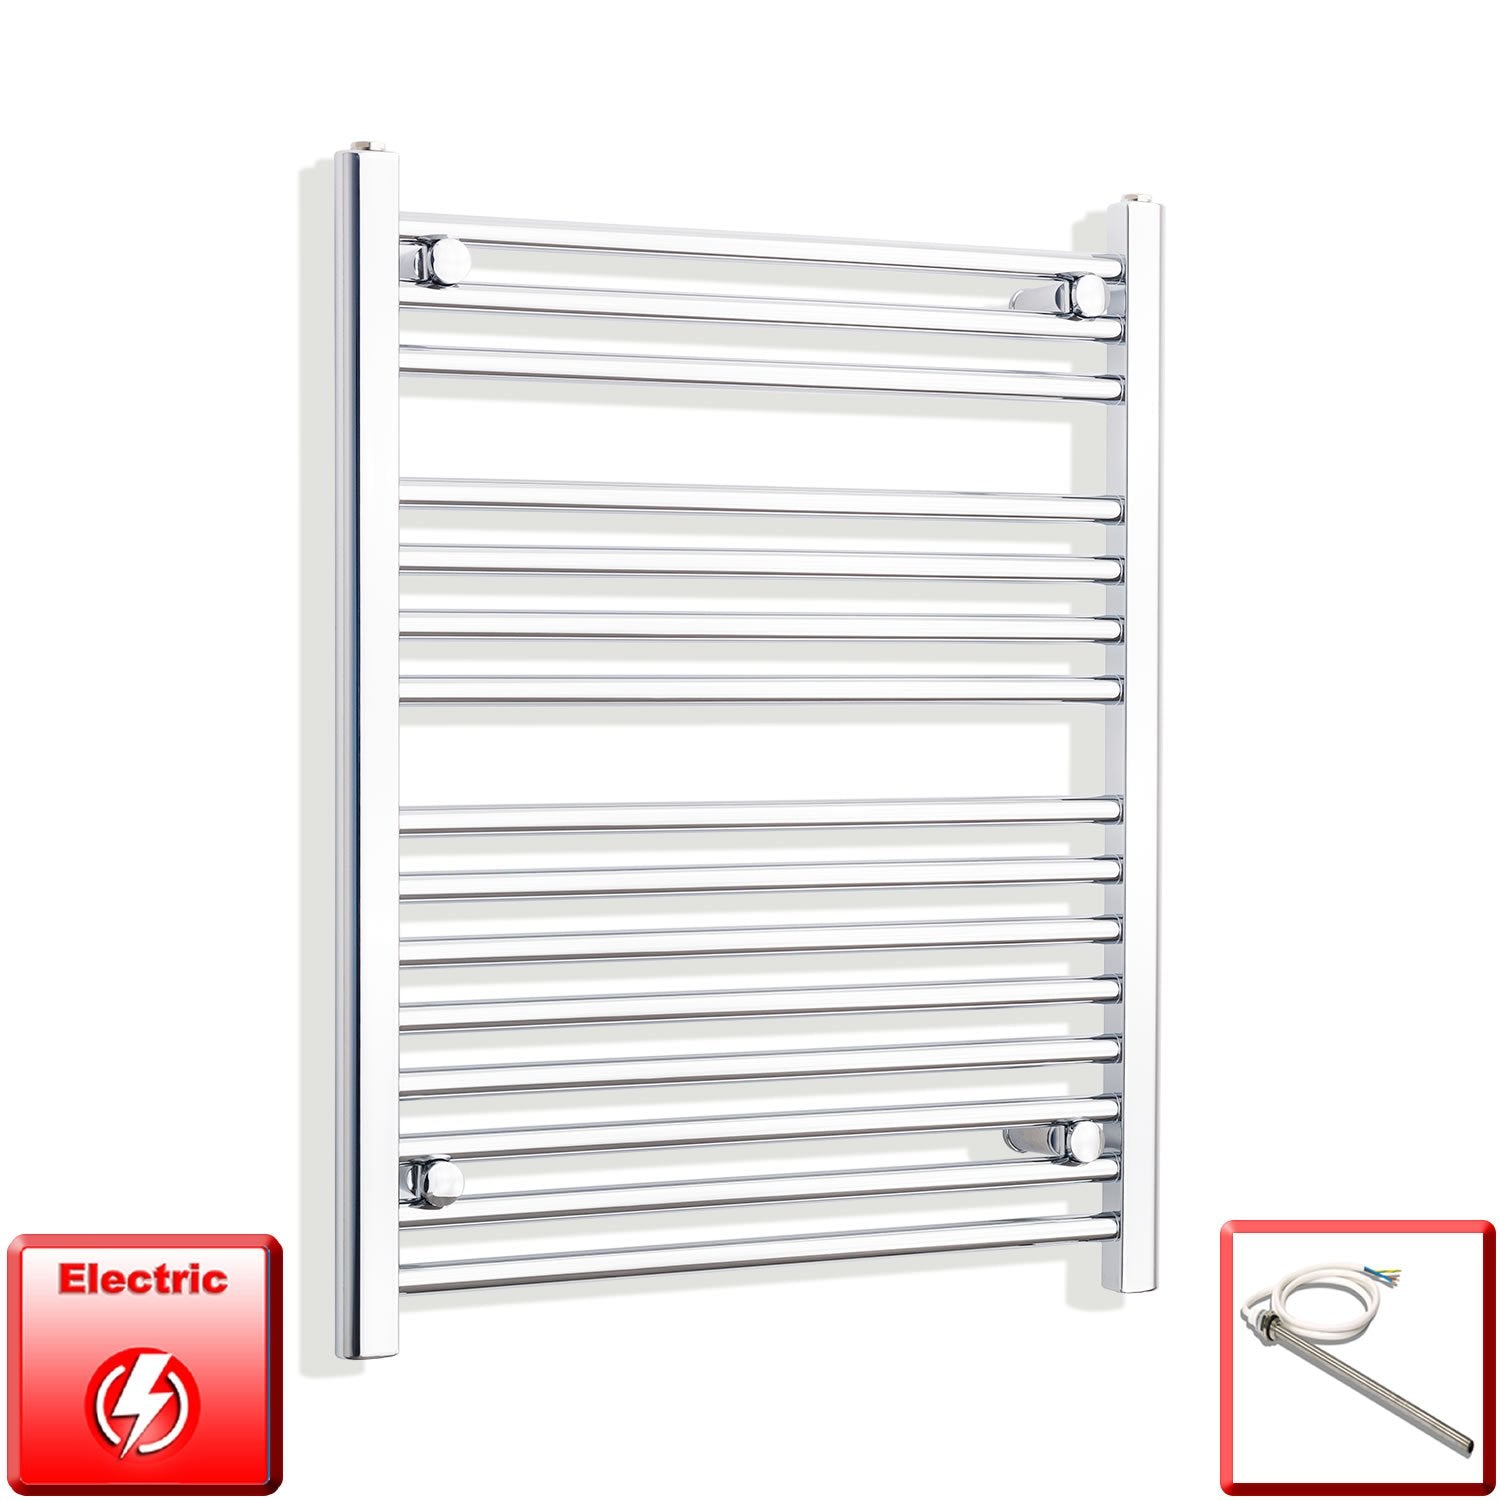 700mm Wide 800mm High Flat Or Curved Chrome Pre-Filled Electric Heated Towel Rail Radiator HTR,Single Heat Element / Straight